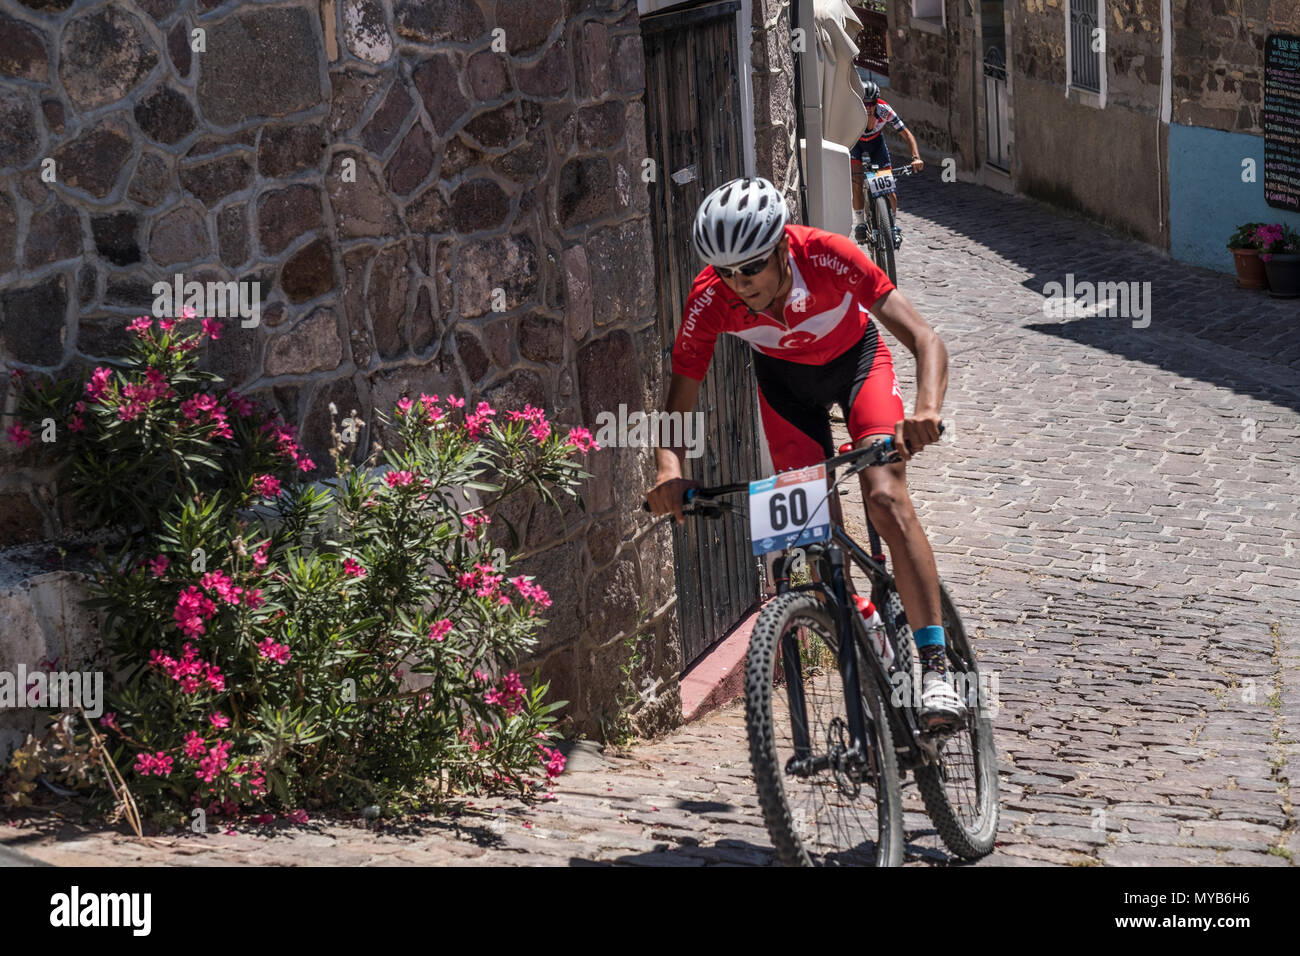 Turkish cyclist competes in an international mountain bike race in the Greek village of Molyvos on the island of Lesvos - Stock Image